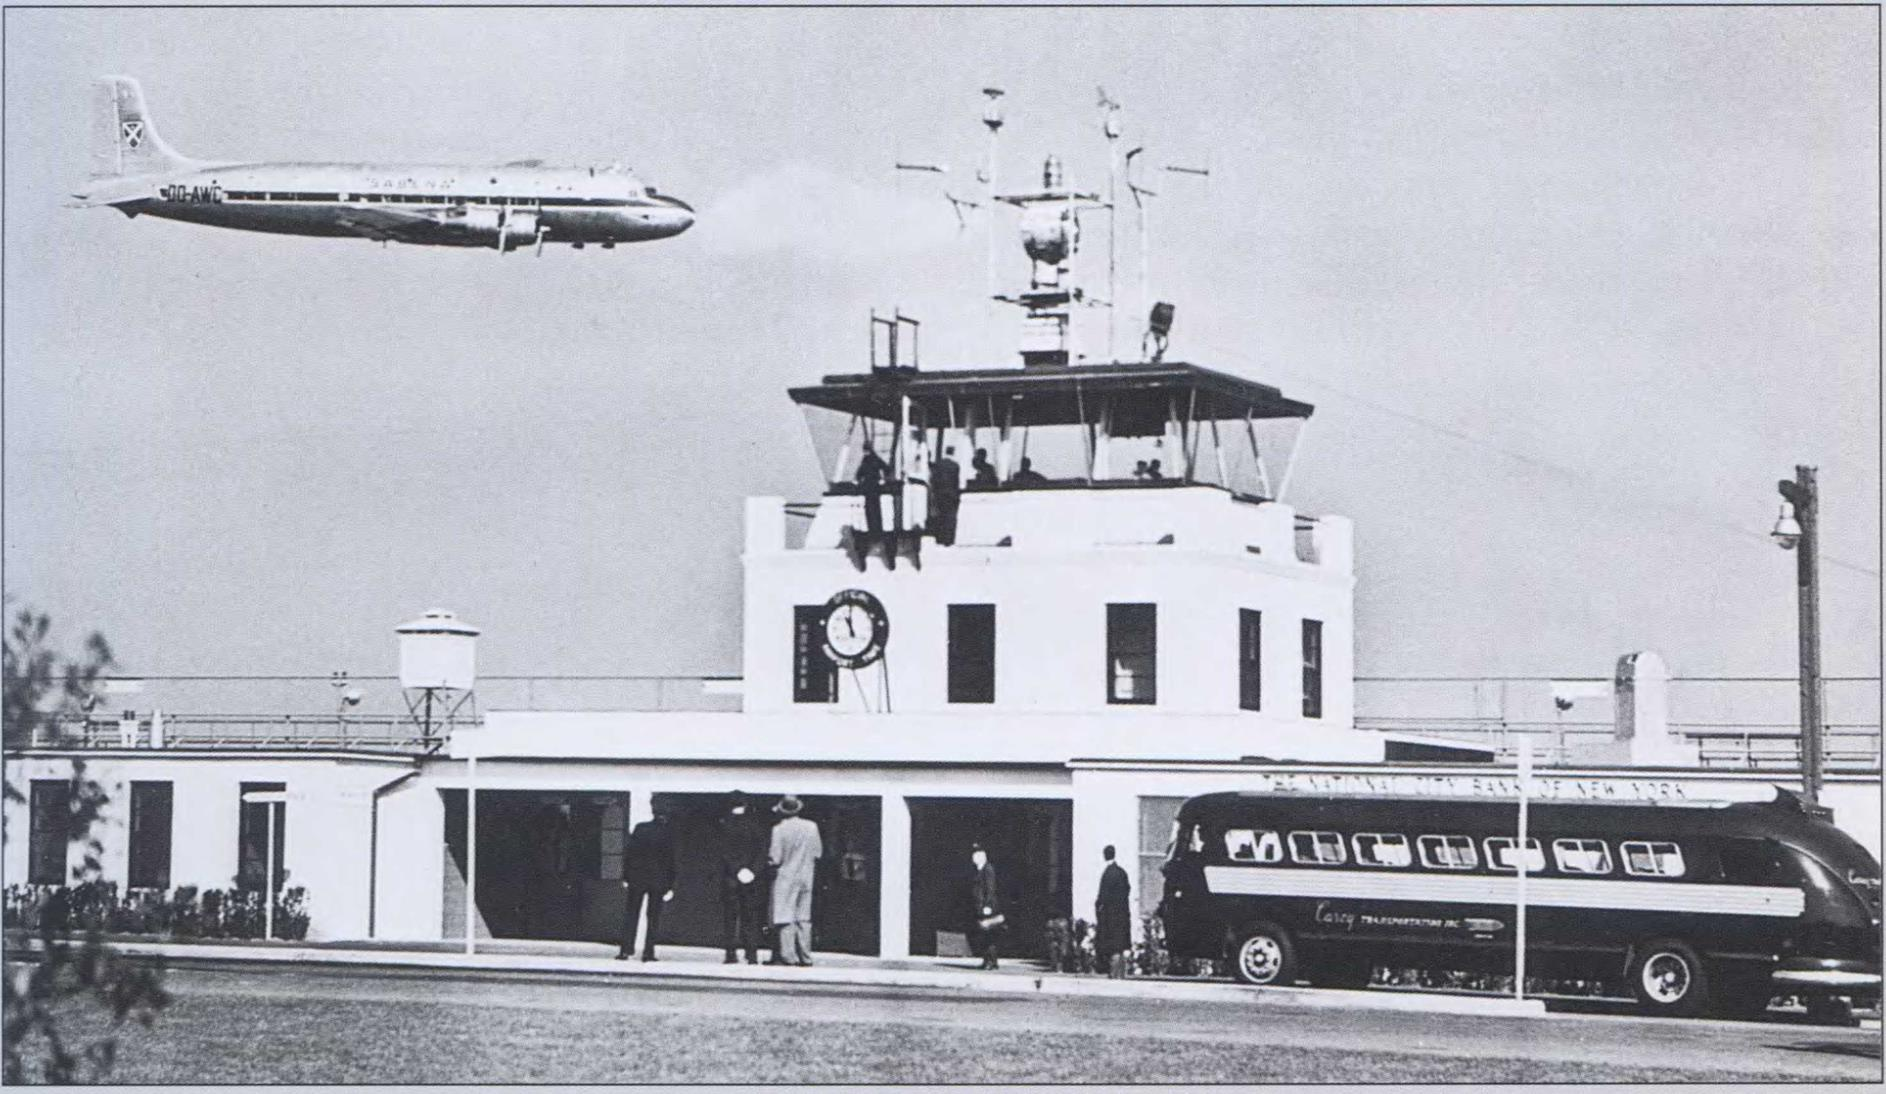 MAJOR U. S. AIRPORTS IN THE 1950s